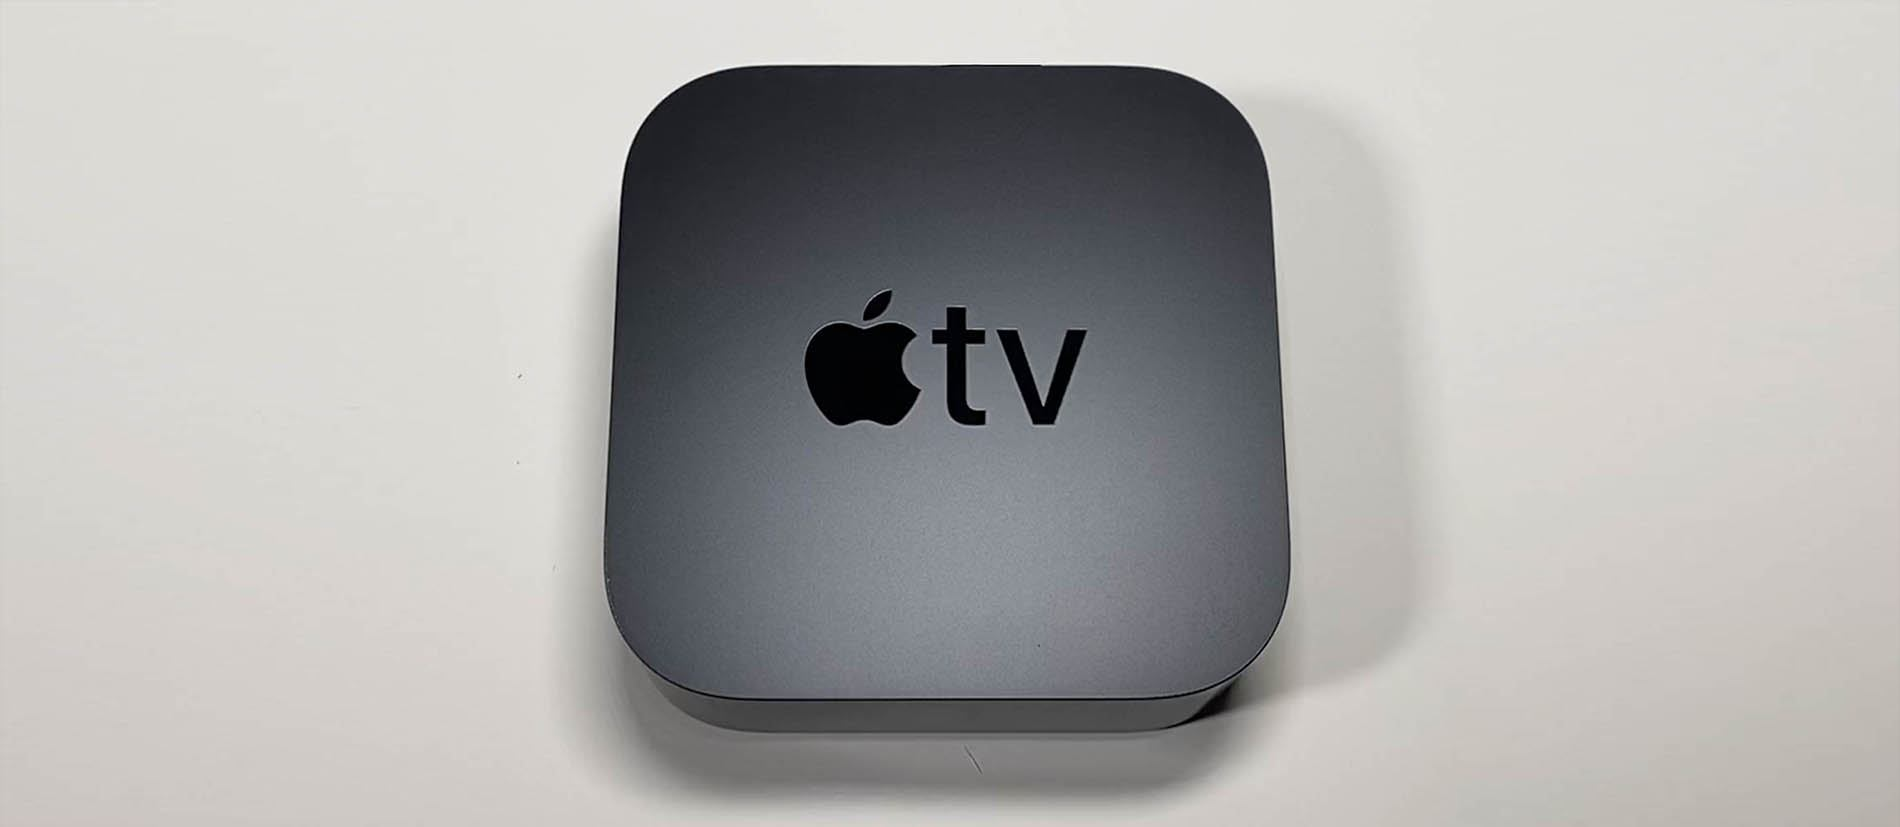 Top-down image of the Apple TV 4K Second Generation